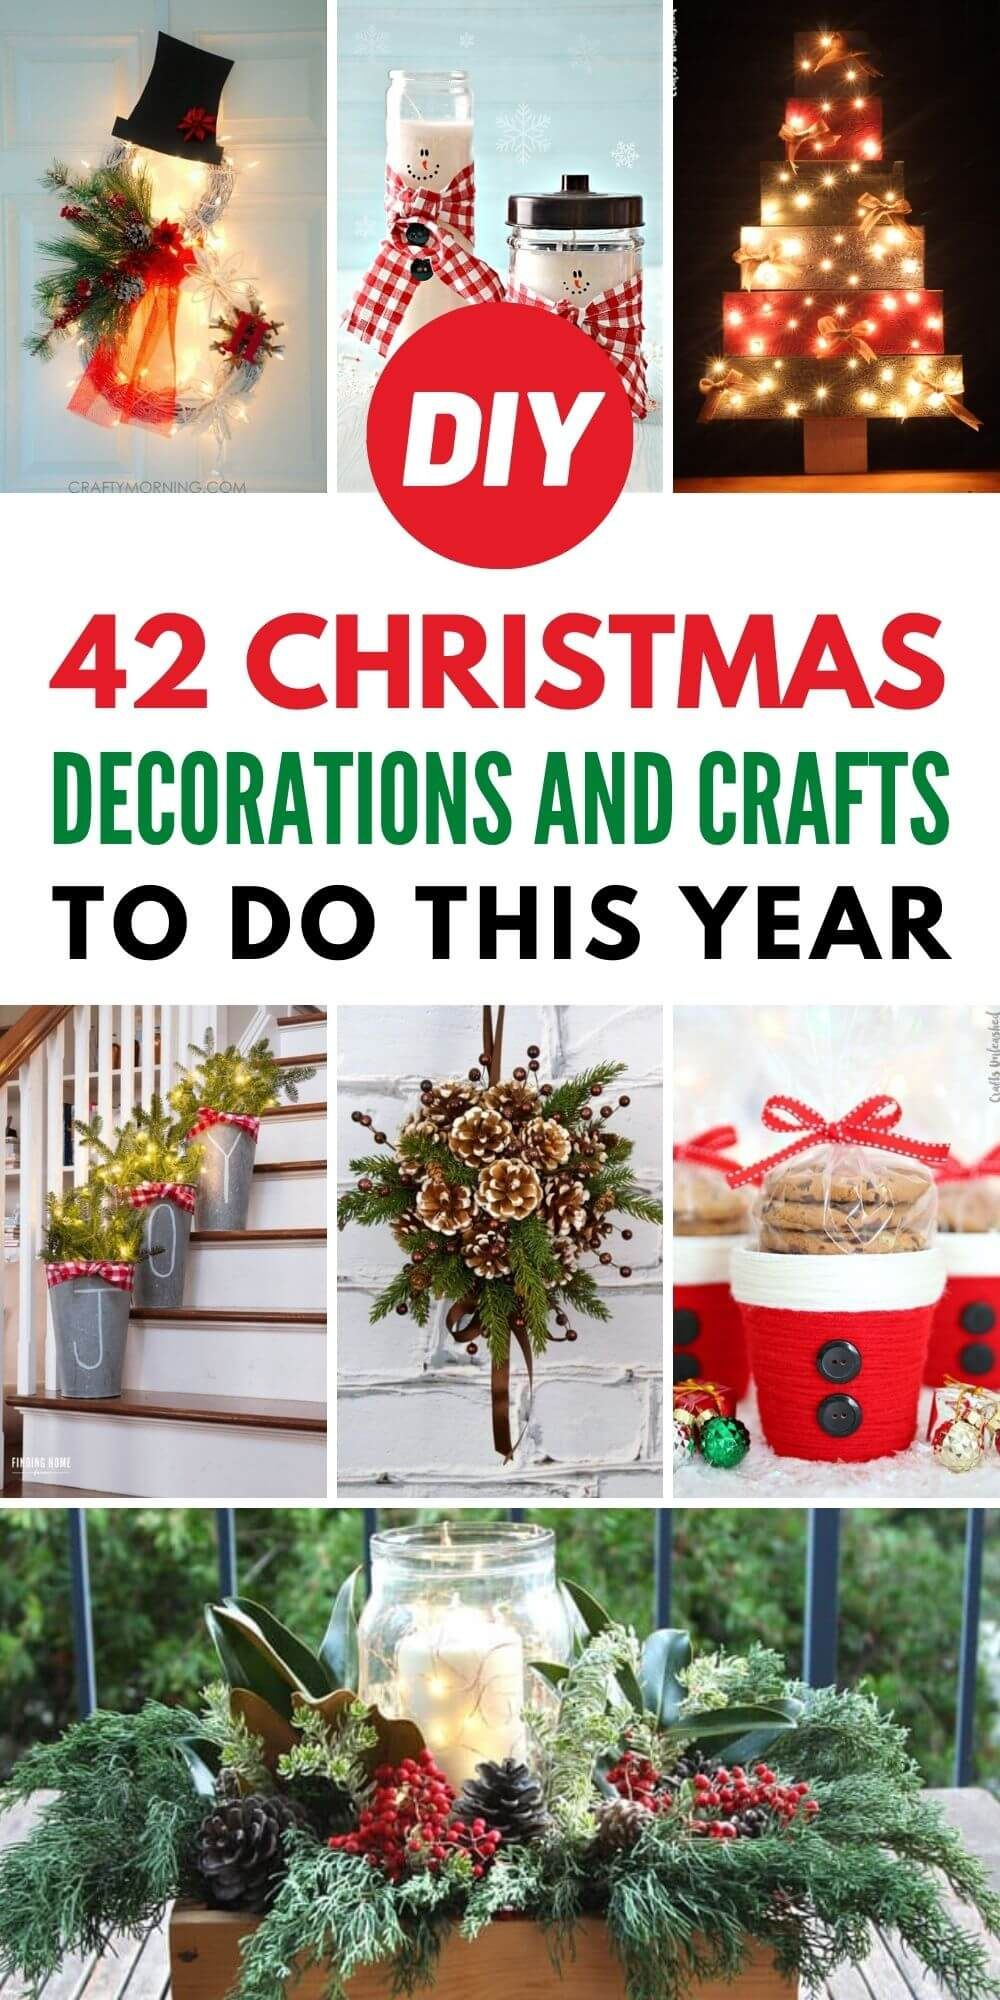 42 DIY Christmas Decorations and Crafts To Do This Year